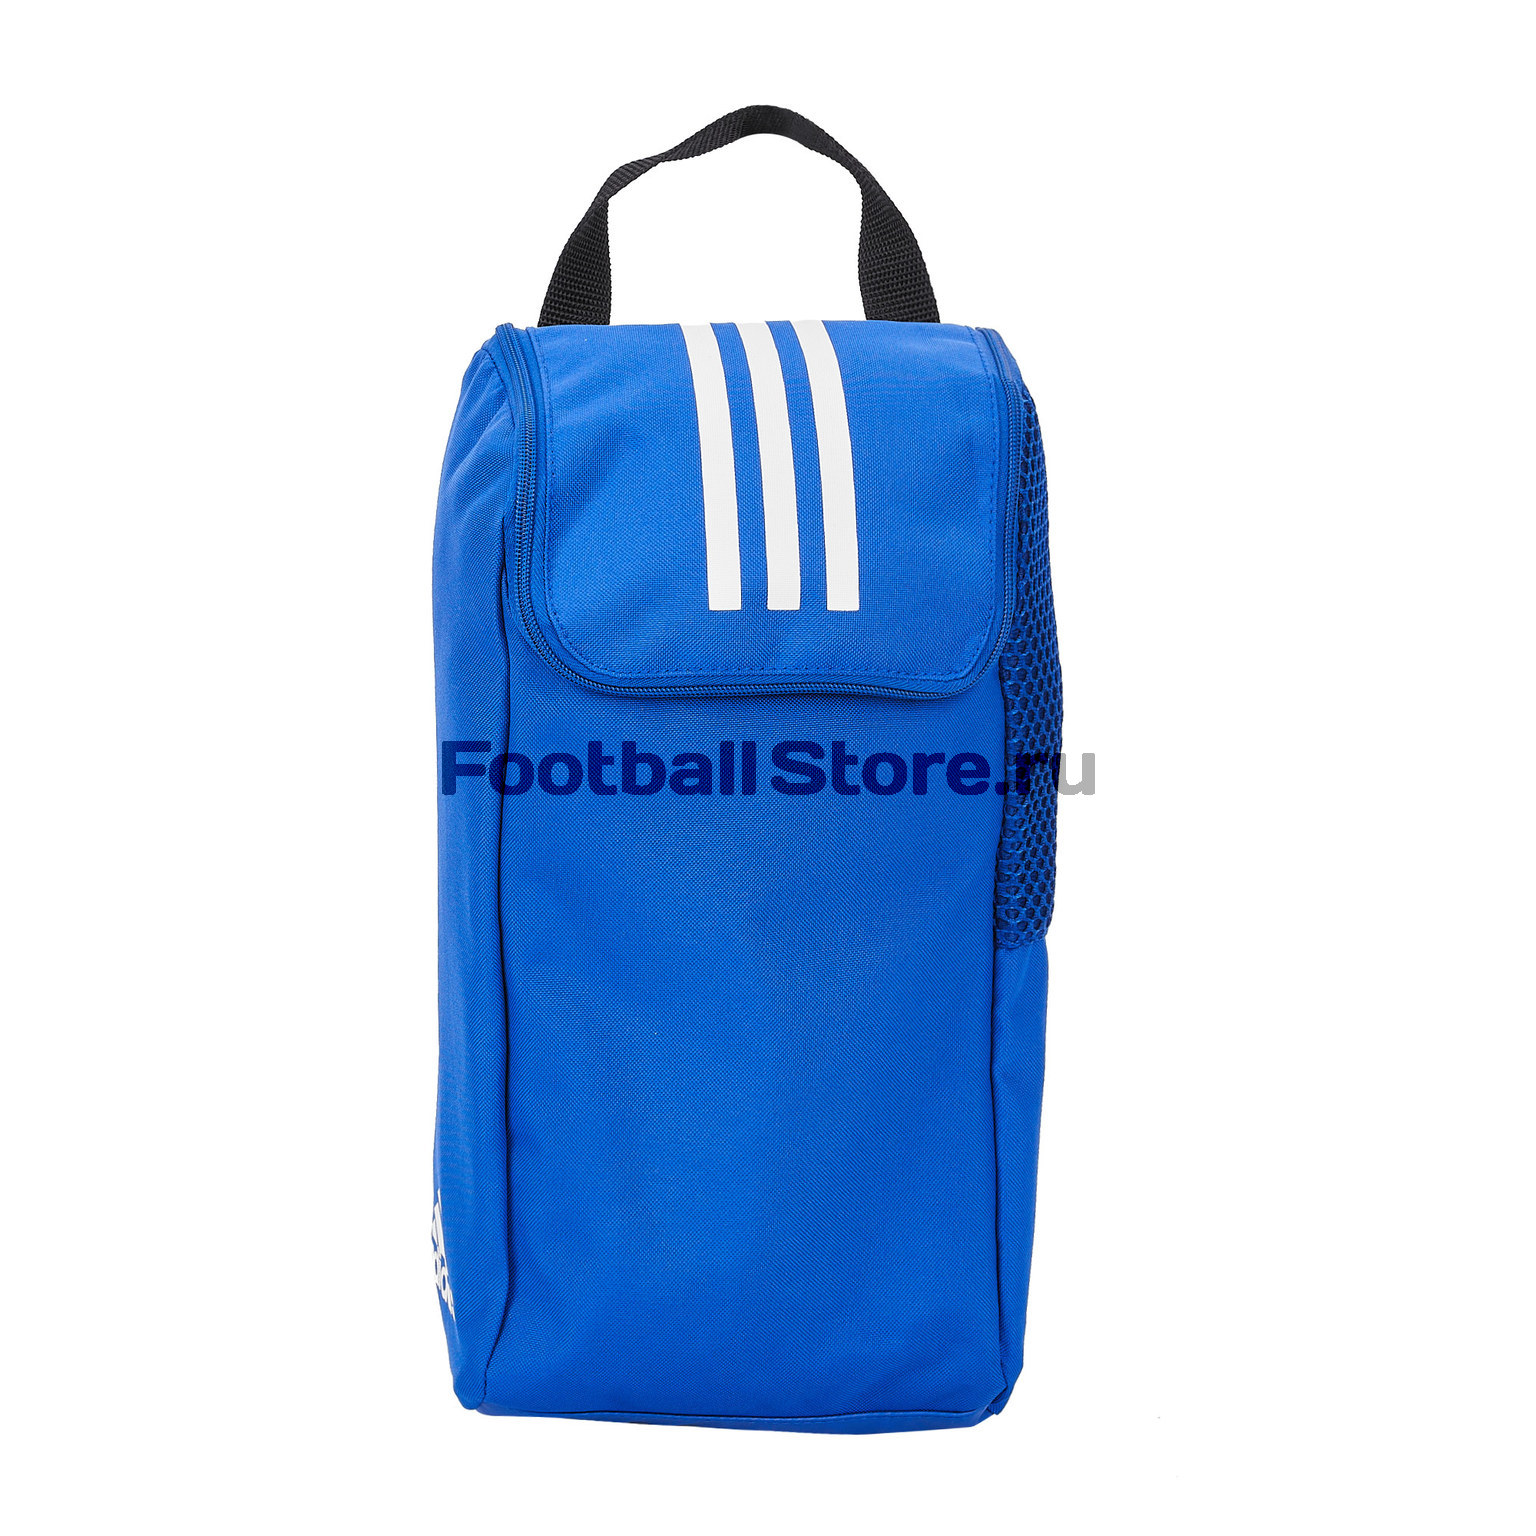 Сумка для обуви Adidas Tiro SB DU2010 рюкзак adidas tiro bp bs4761